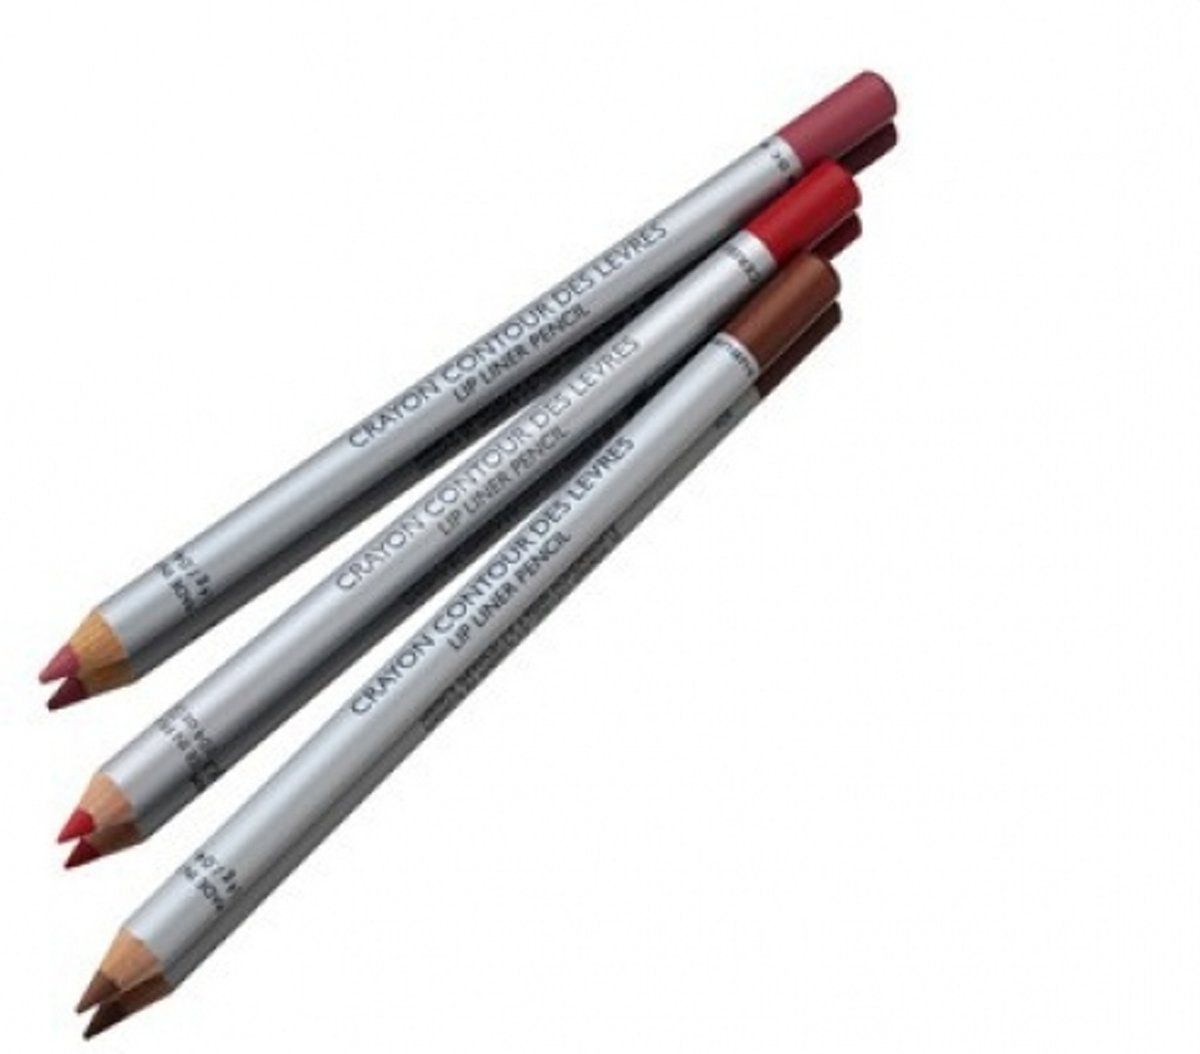 Mavala Lip Liner Pencils Lip Potlood 1 st - 364 - Auburn